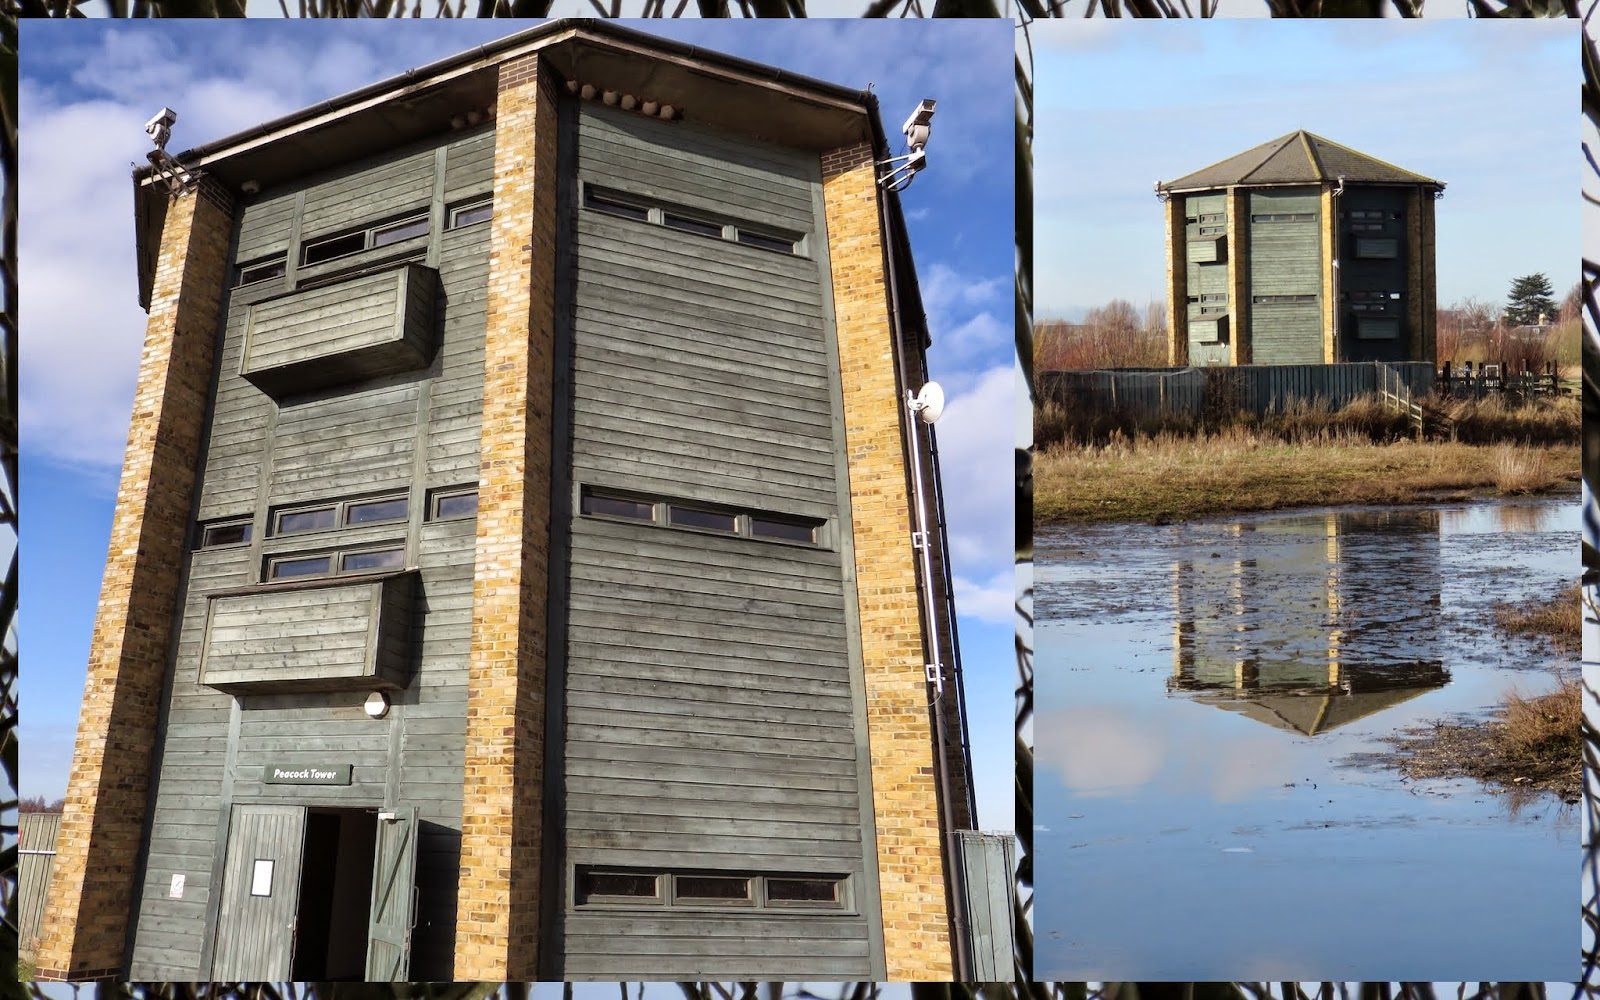 Bird Hide at the Wildfowl and Wetlands Trust in London